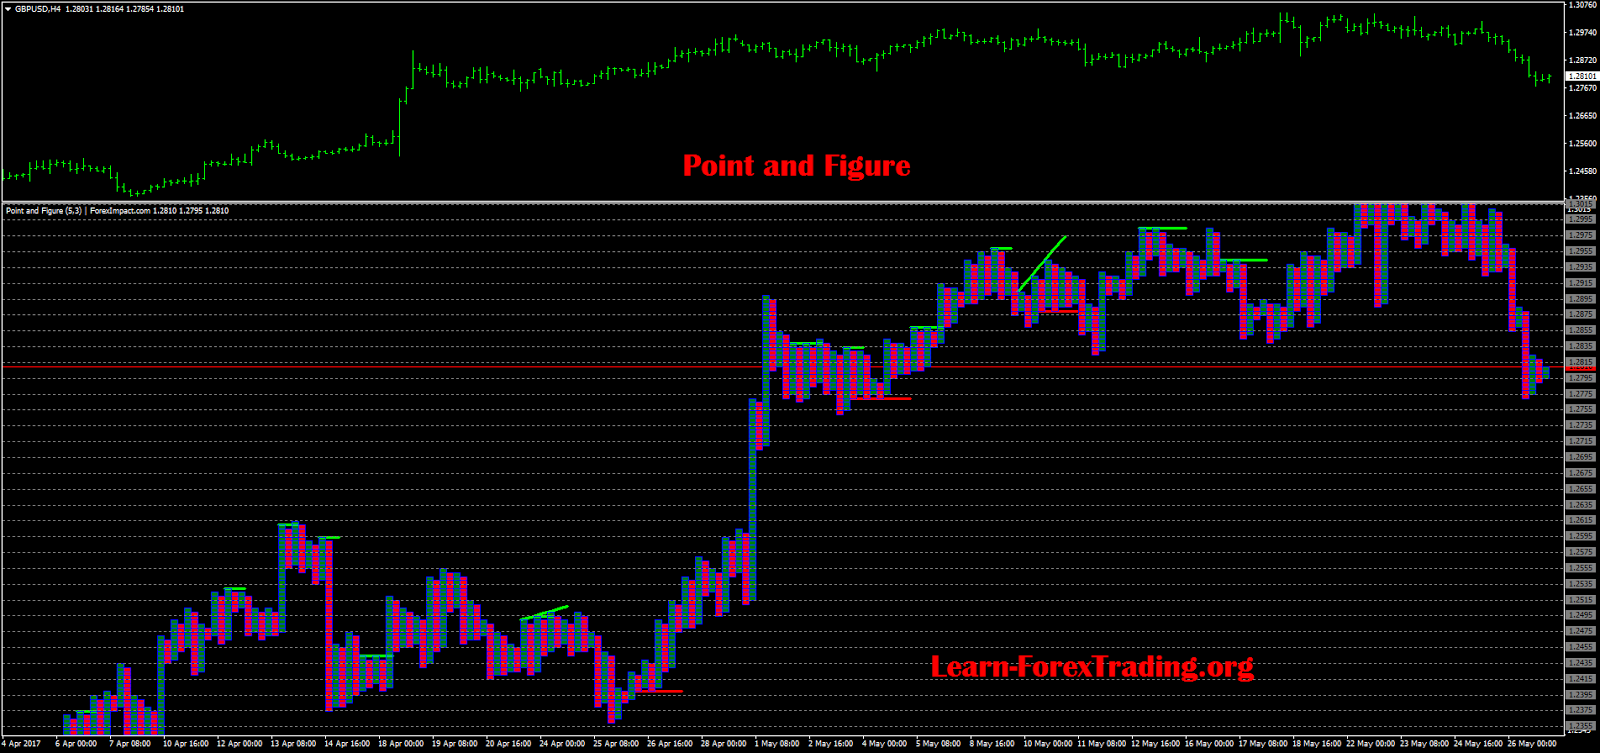 Forex point and figure mt4 indicator